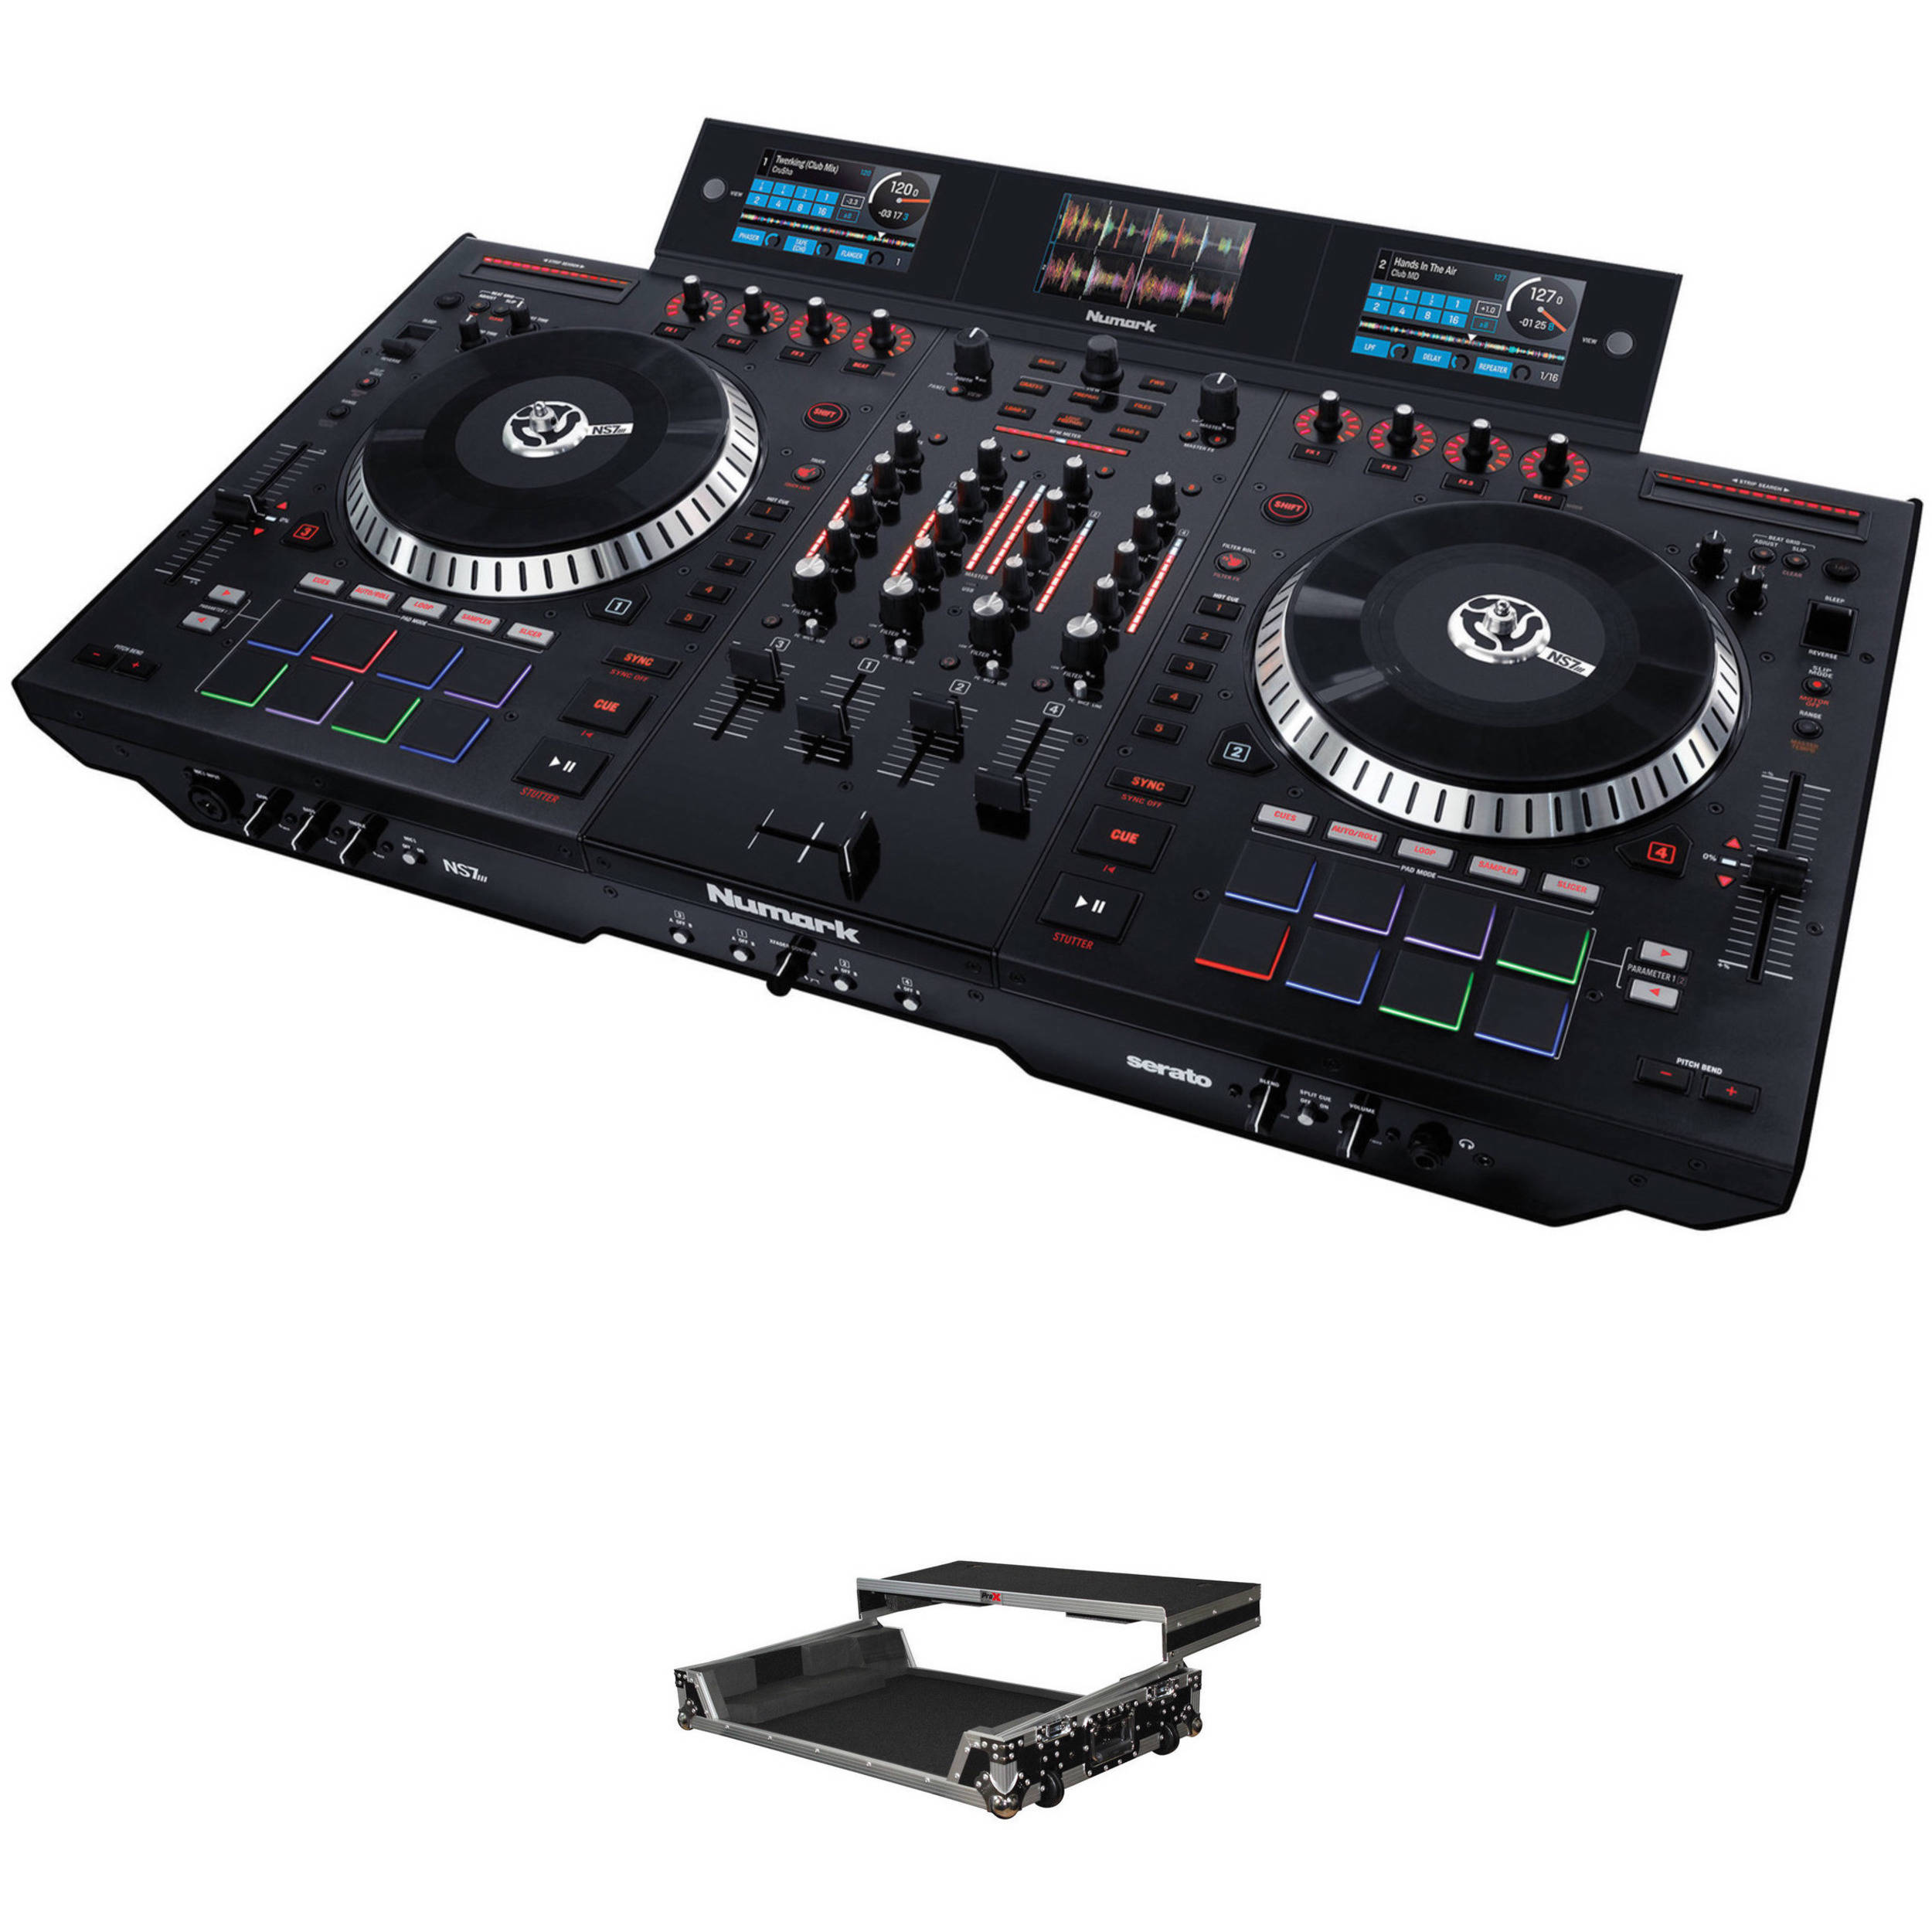 Numark ns7 iii 4 deck serato dj controller kit with hard case for Dj controller motorized platters